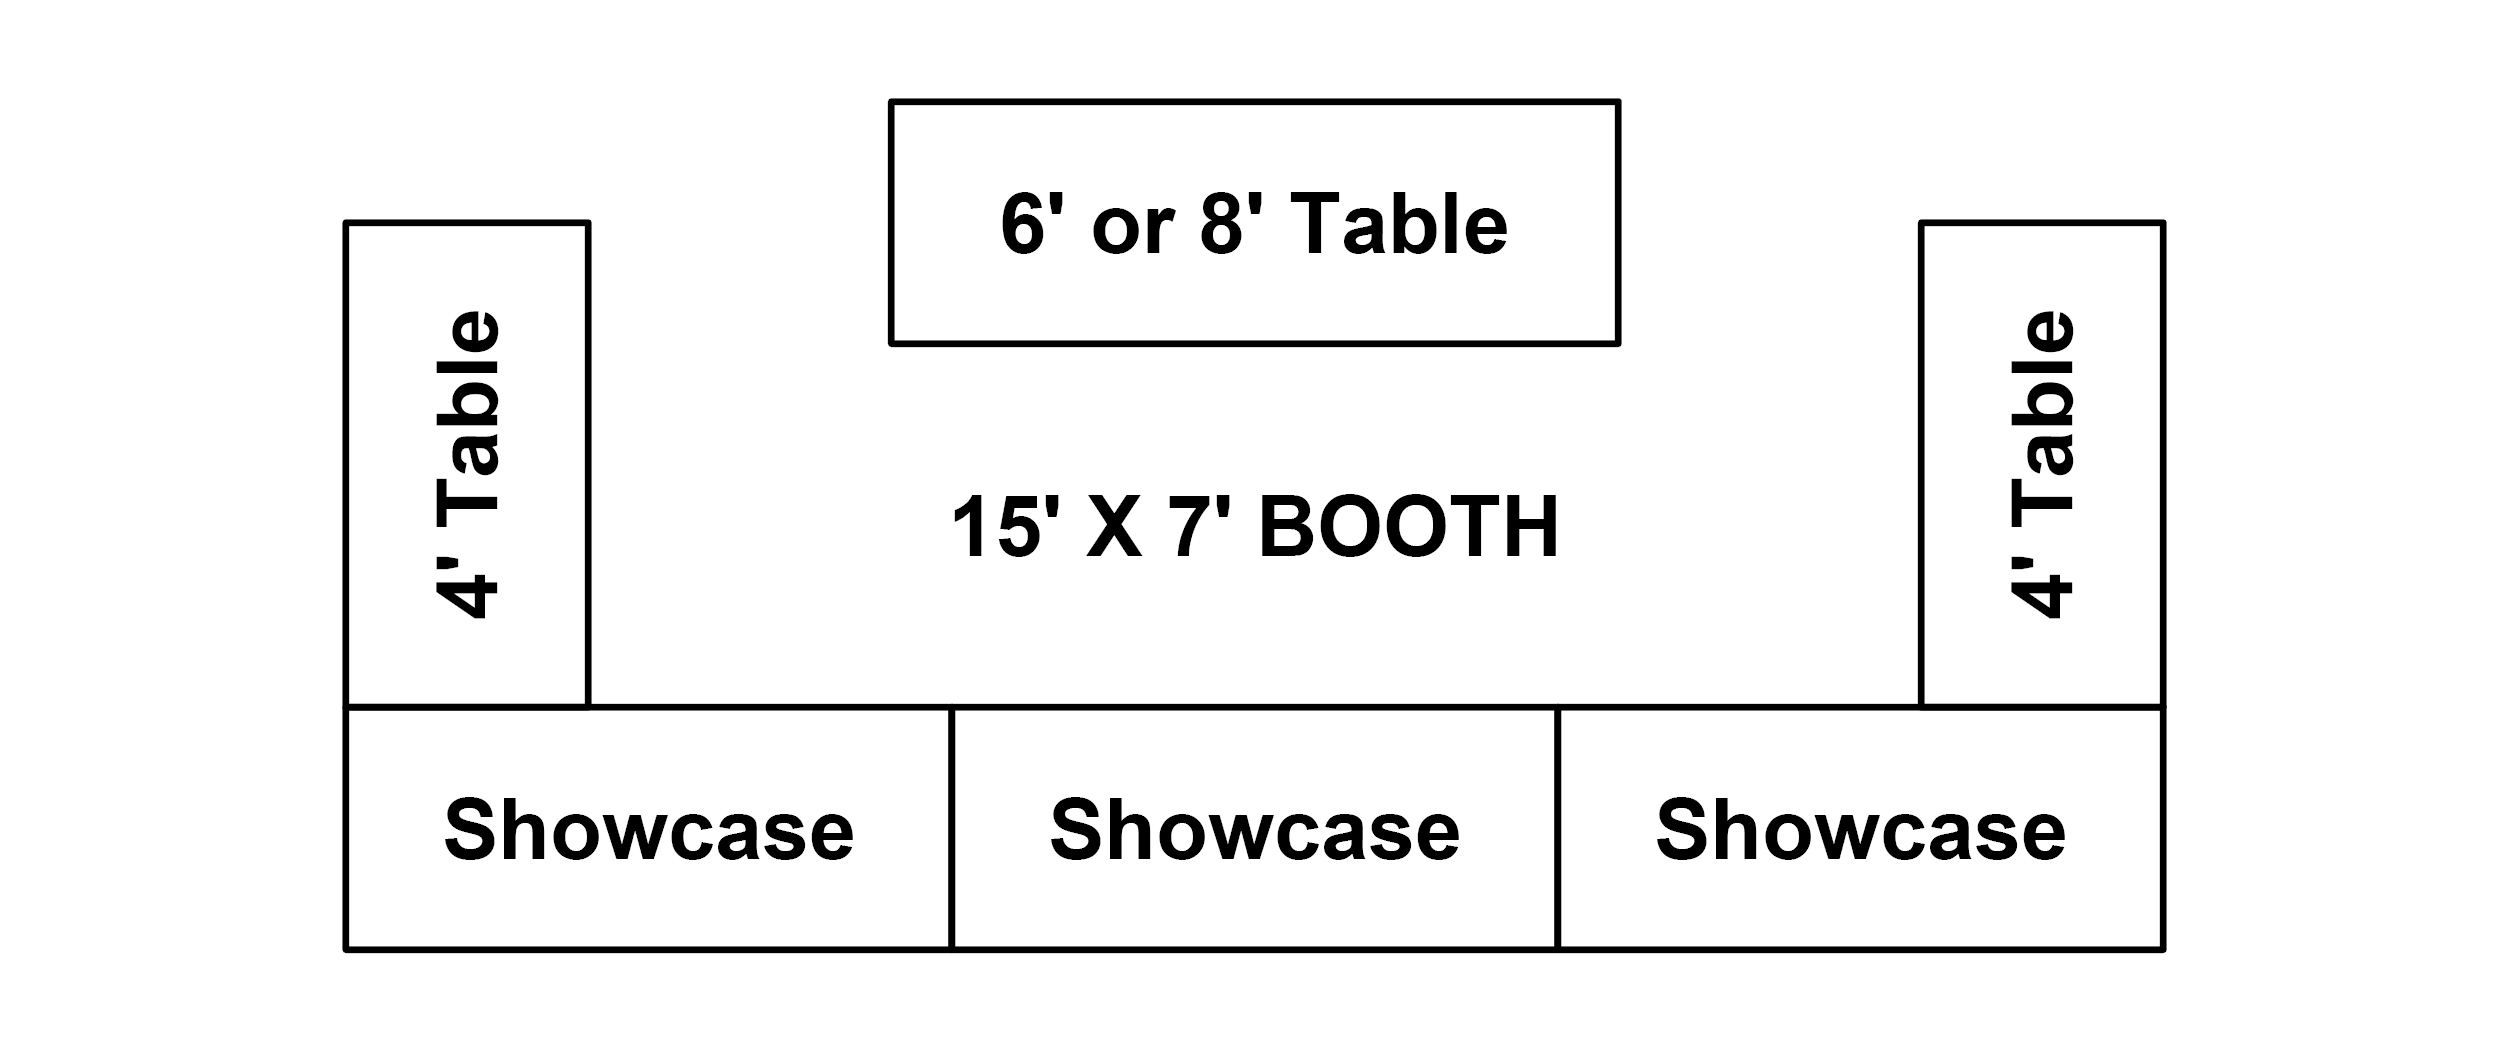 15' x 7'* Booth  Please note, this layout only applies to exhibitors ordering 3 or more showcases. Comes with 2 – 4' tables and 1 - 6' table, 750 watts of electricity, table skirts**, table covers** and 2 chairs. Showcases are rented separately.